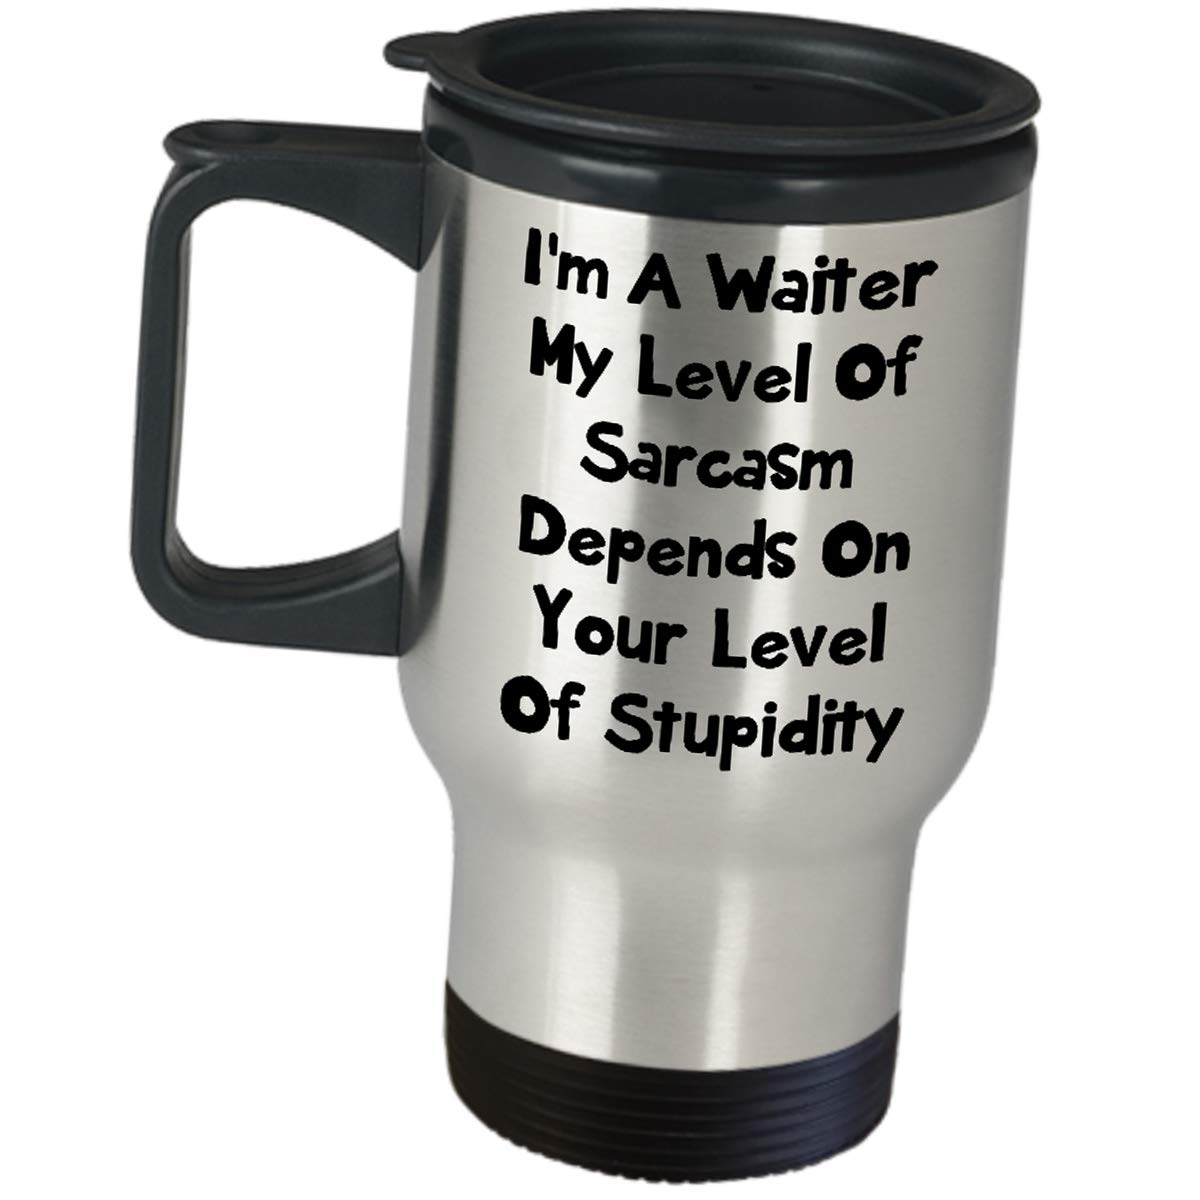 Funny Cute Gag Gifts for Waiter - My Level Of Sarcasm Depend On - Travel Mug Appreciation For Men Server Fun Job Pride Gift Insulated Stainless Steel Coffee Tumbler Restaurant Cafeteria Food Order